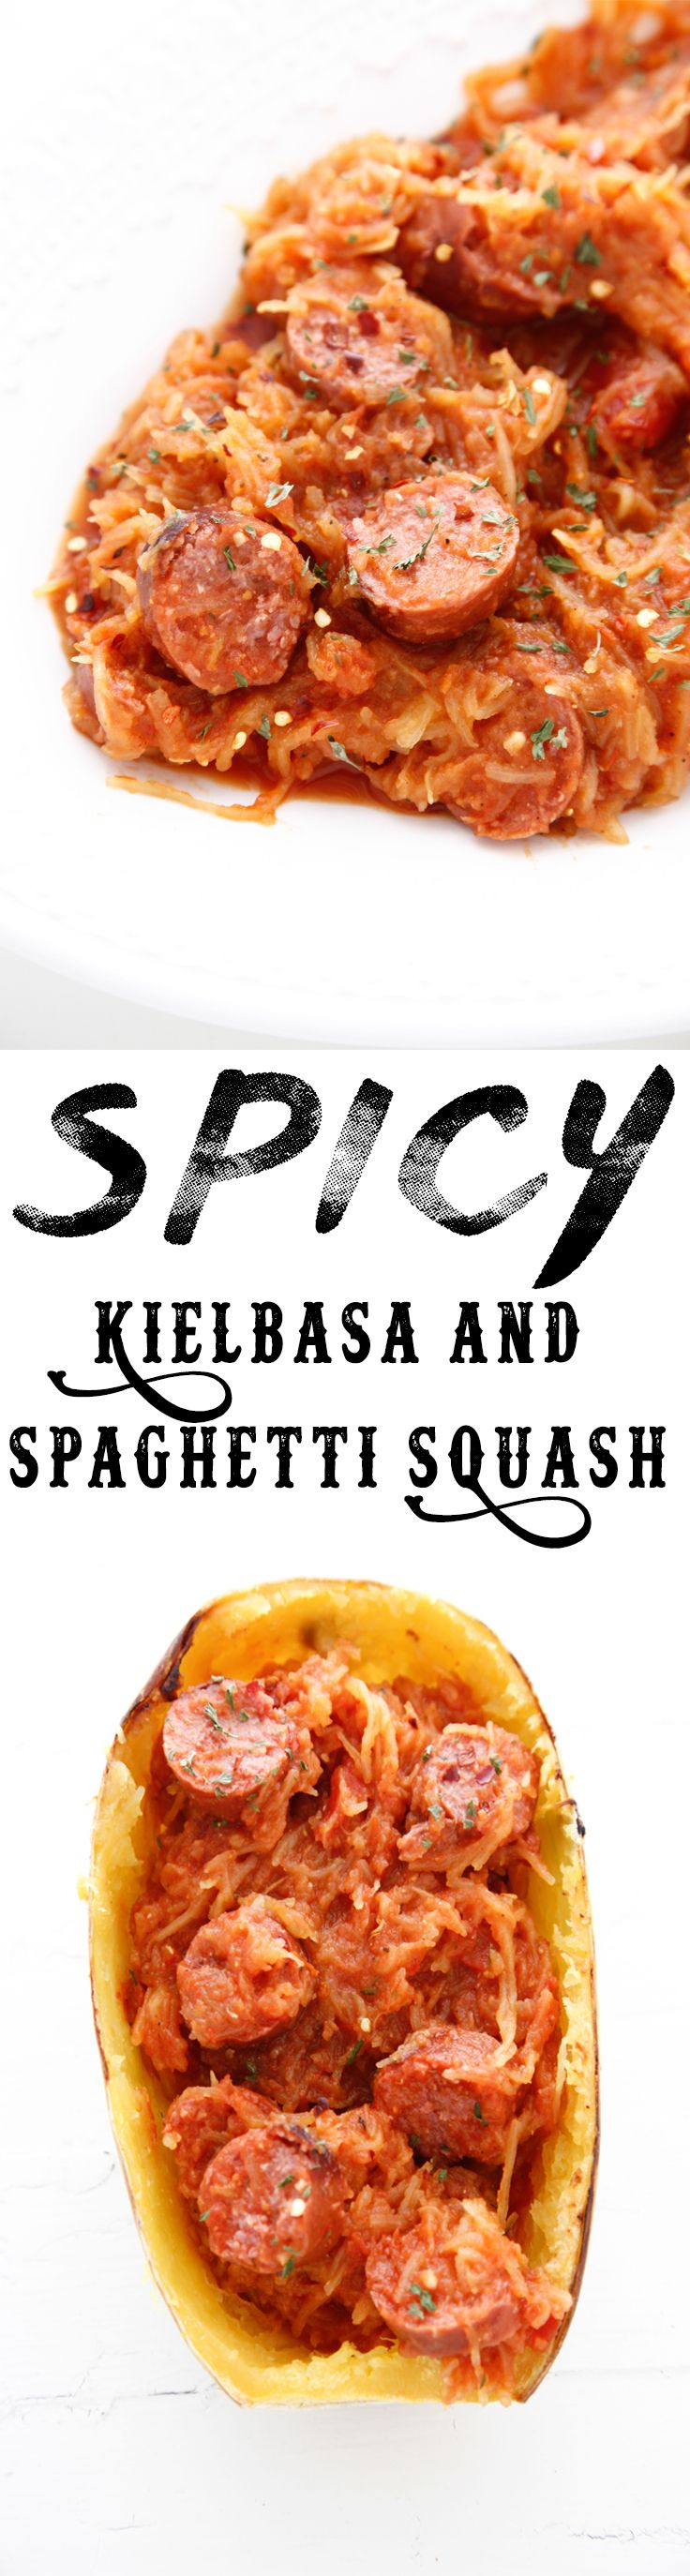 Spicy Kielbasa and Spaghetti Squash via @thebrooklyncook